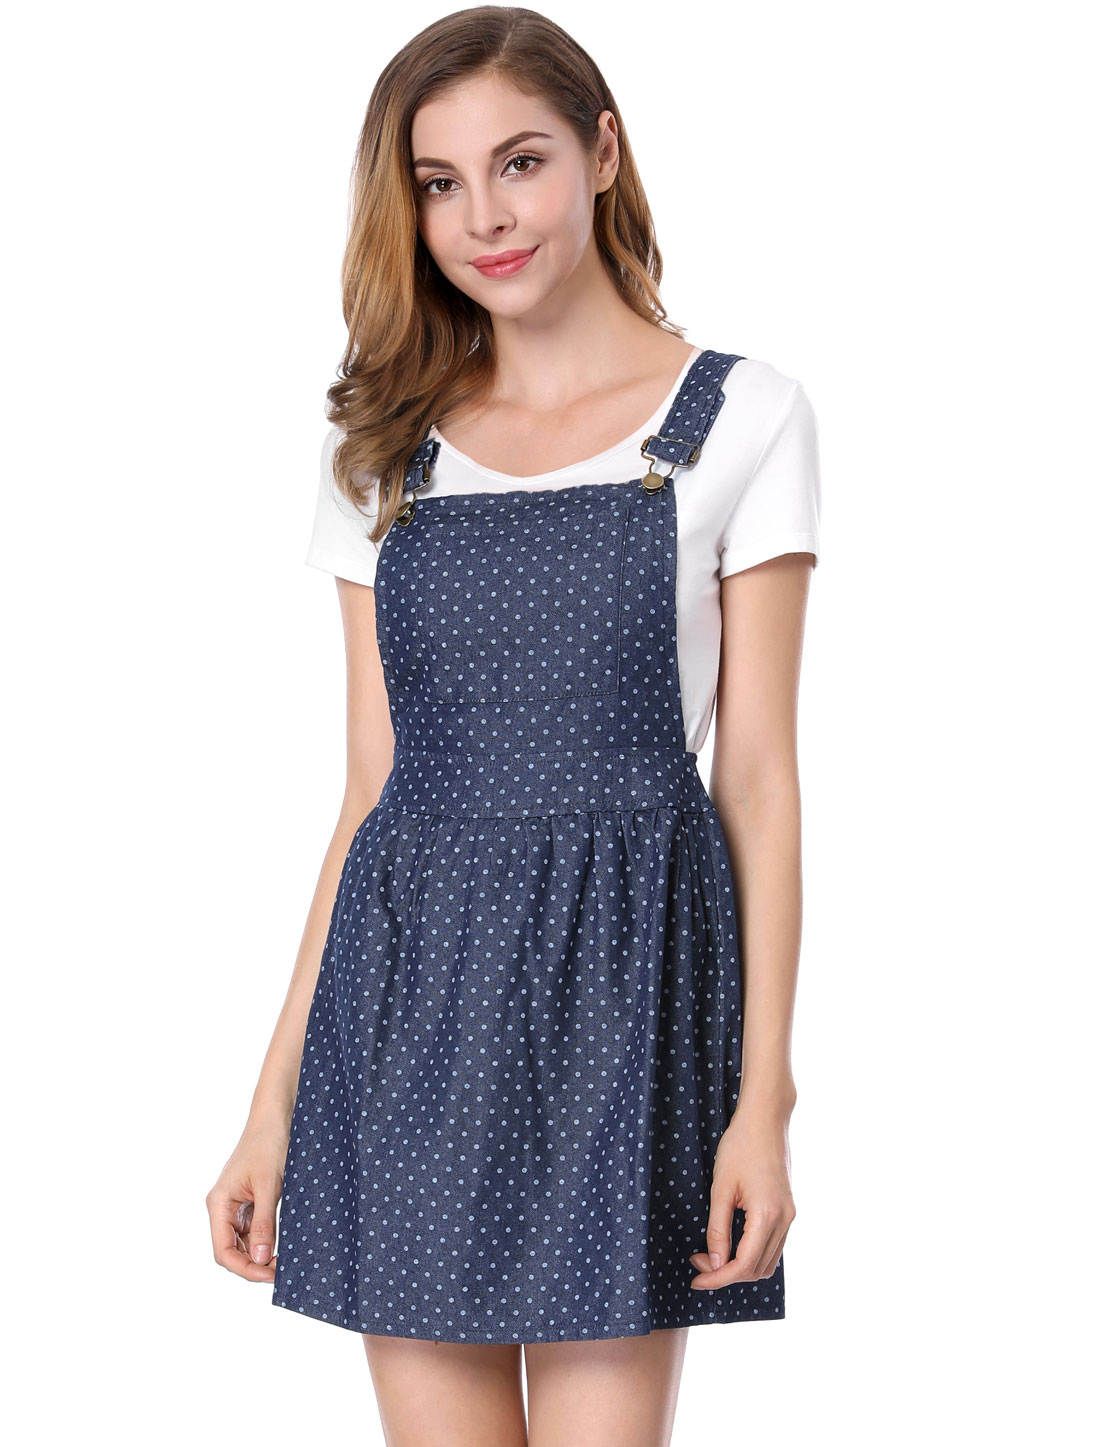 Lady Sweet Dots Print One Pocket Front Denim Suspender Dress Dark Blue XL